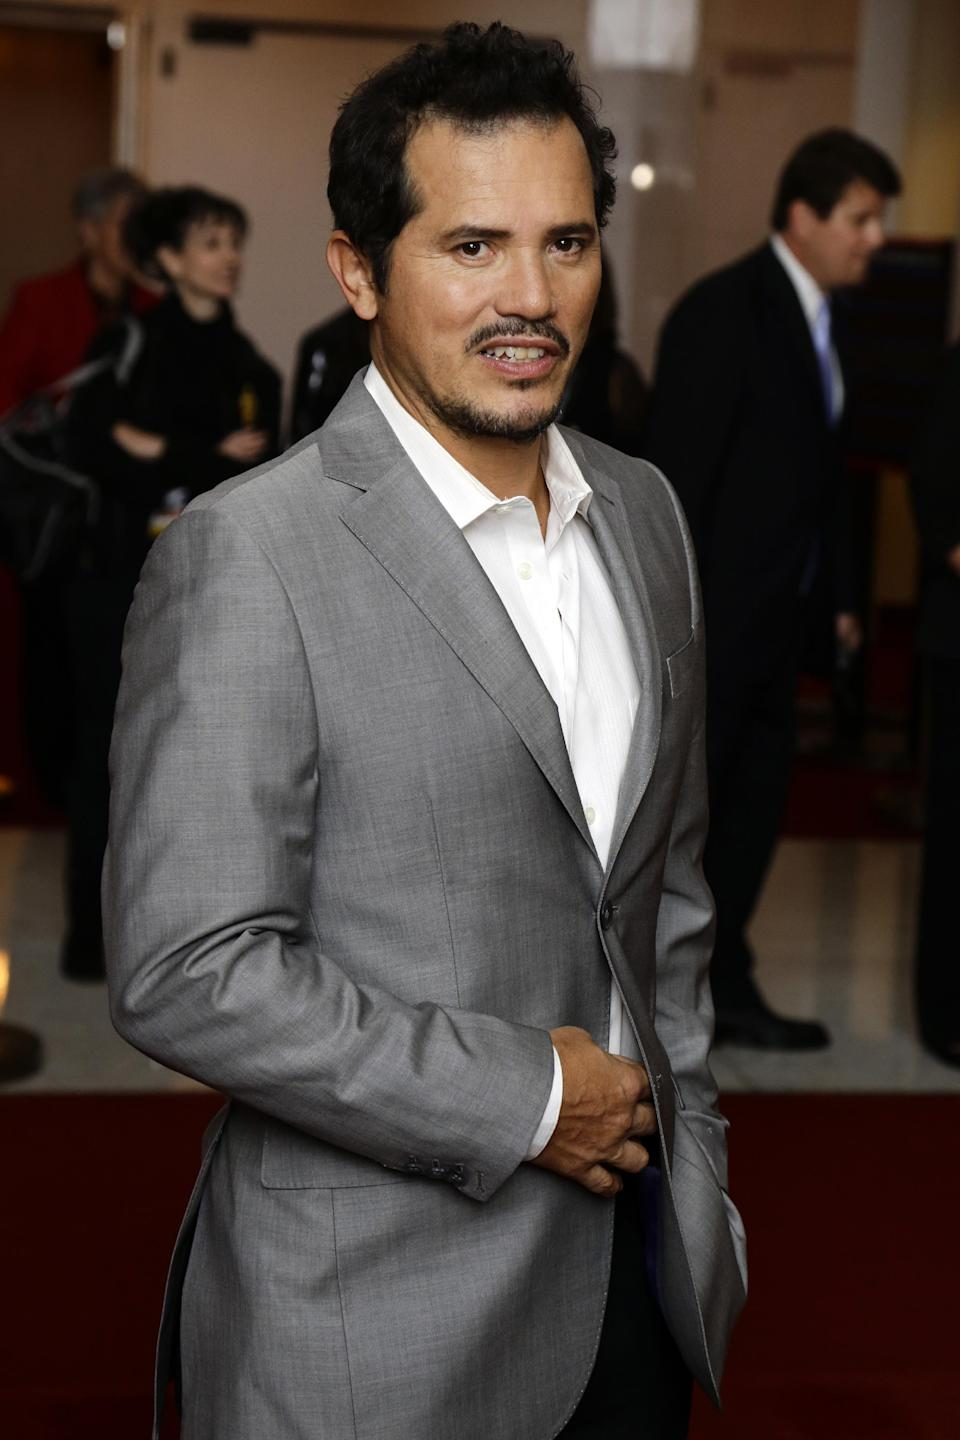 Actor John Leguizamo poses for photographers on the red carpet, before entertainer Ellen DeGeneres receives the 15th annual Mark Twain Prize for American Humor at the Kennedy Center, Monday, Oct. 22, 2012, in Washington. (AP Photo/Alex Brandon)